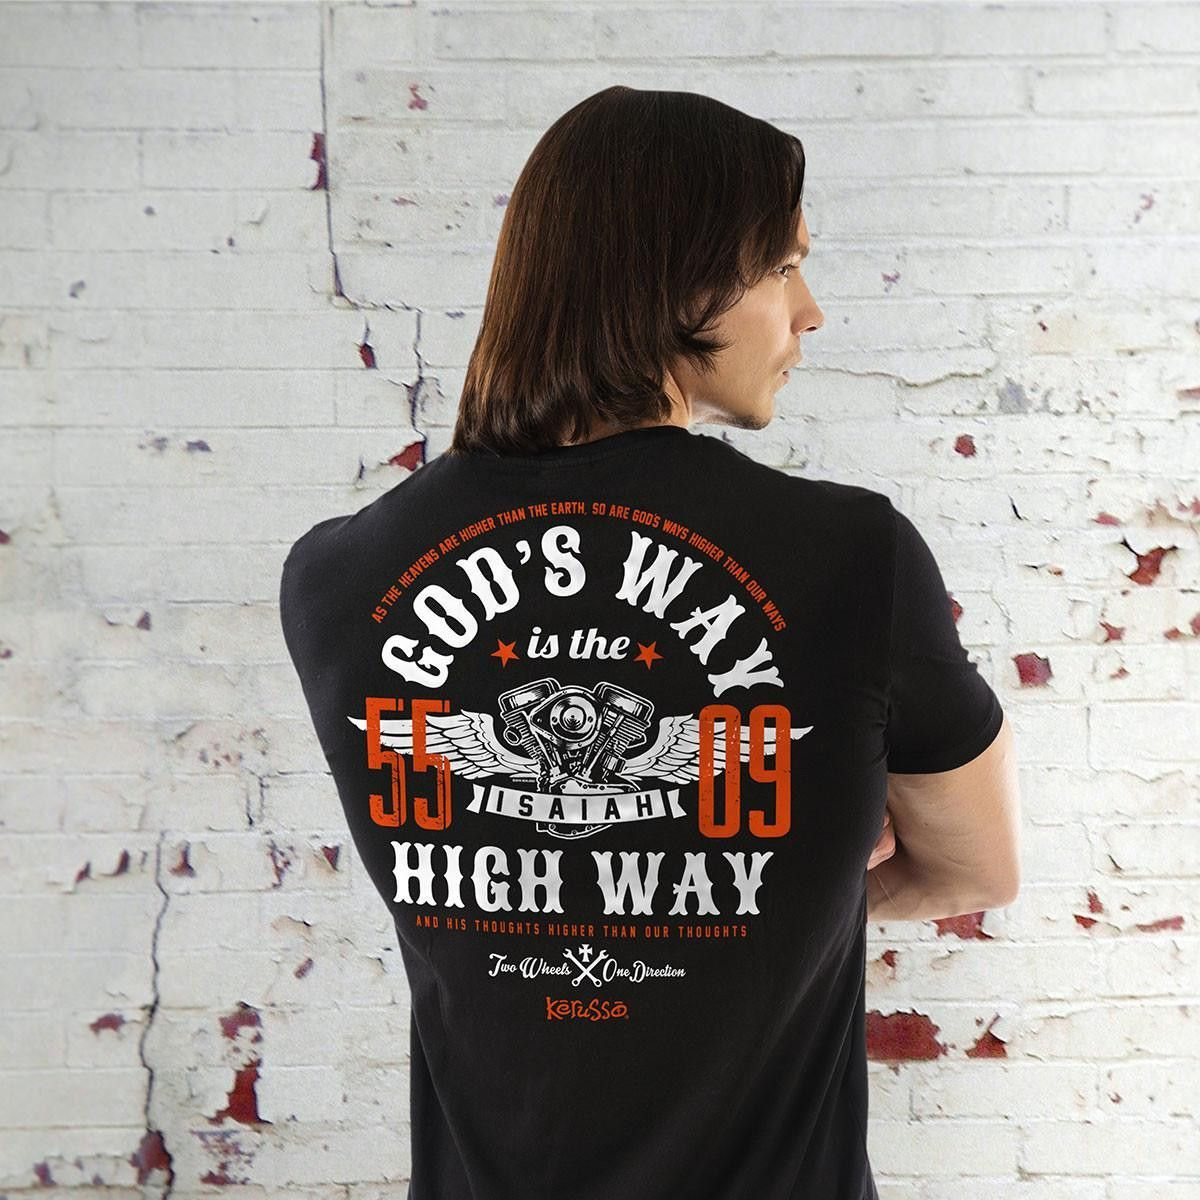 Christian T-Shirt - God's Way T-Shirt (As the Heavens are higher than the Earth)